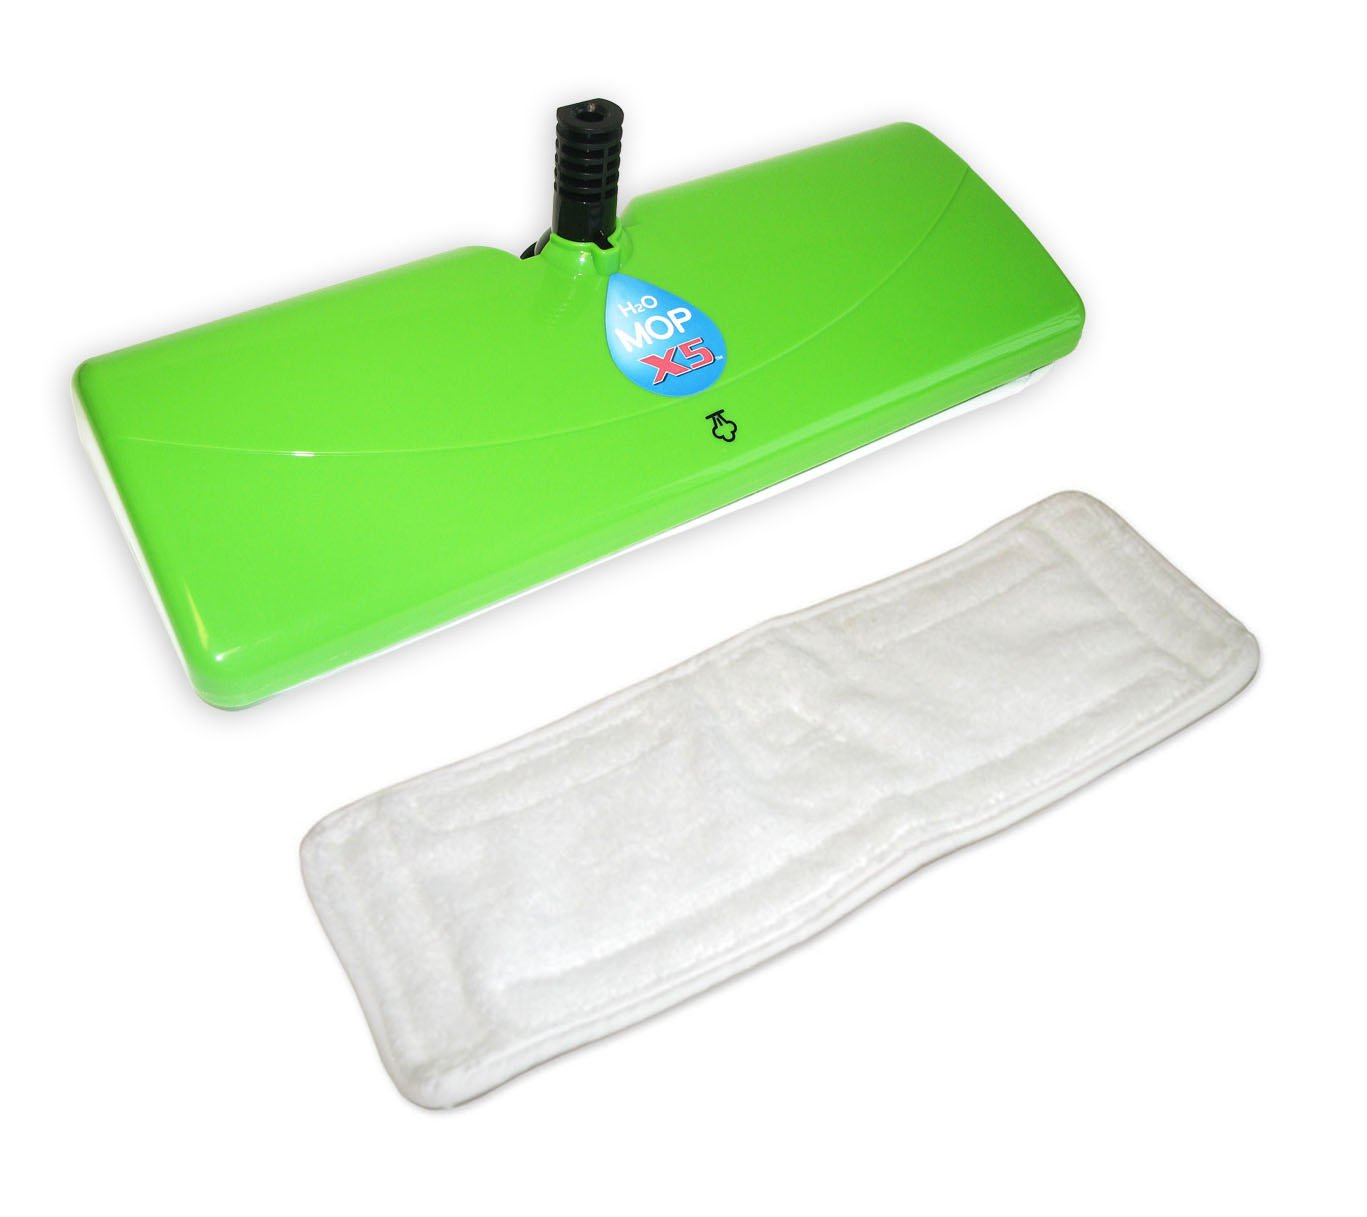 H2O Mop X5 Steam Cleaner Extra Large Mop Head with Microfiber Pad Thane Direct Canada Inc